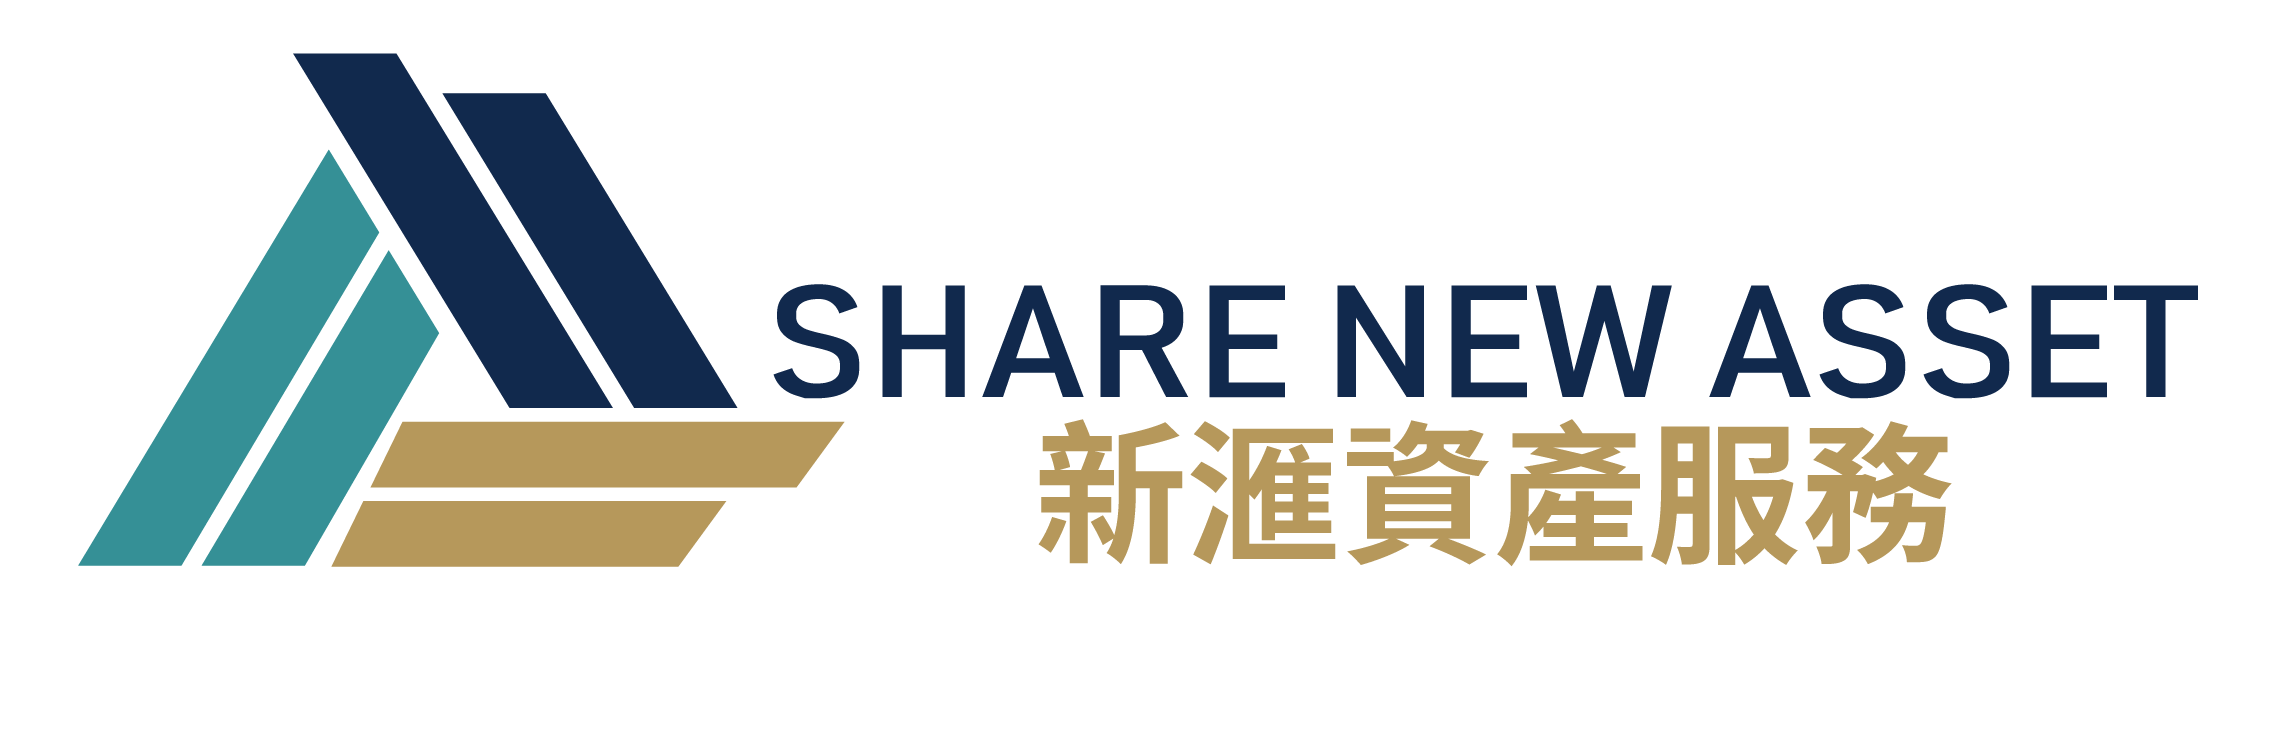 Share New Asset Services